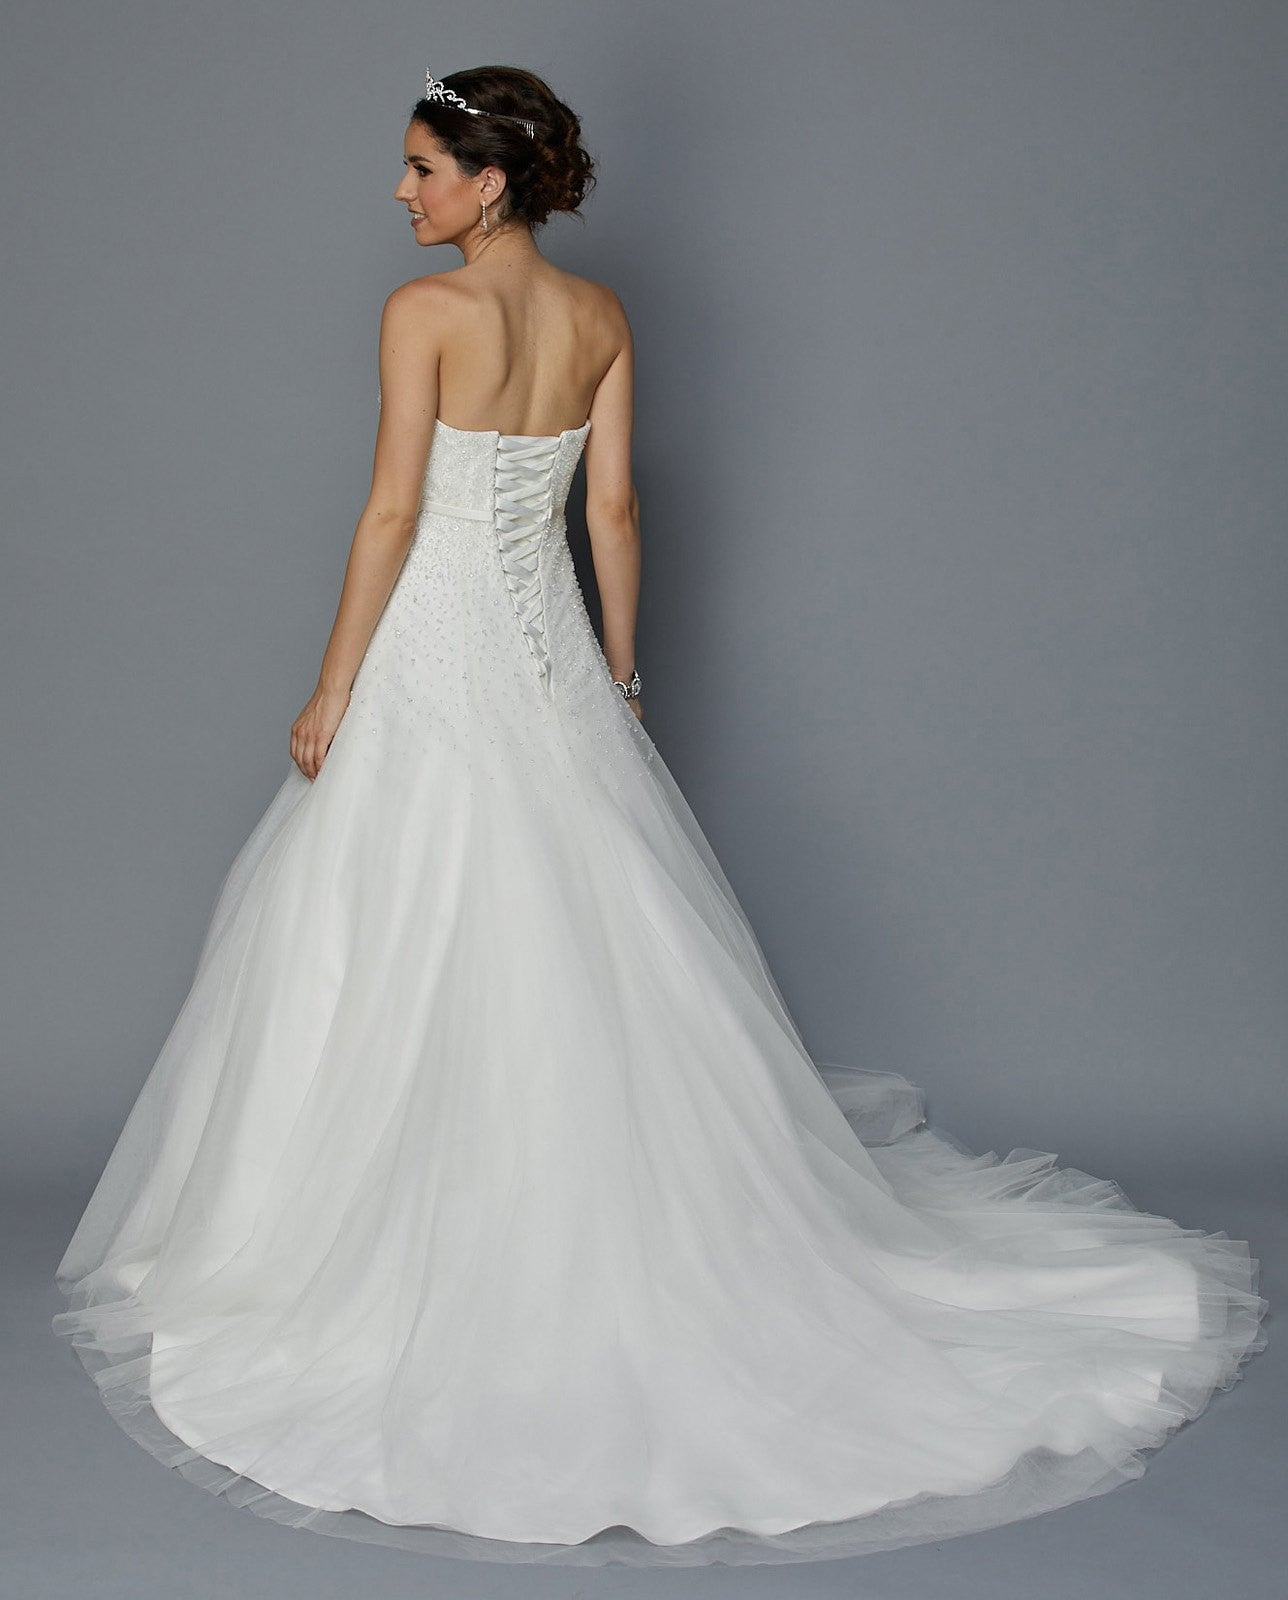 Ivory Wedding Gowns: Juliet 355 Embellished Bodice Strapless Wedding Gown Ivory